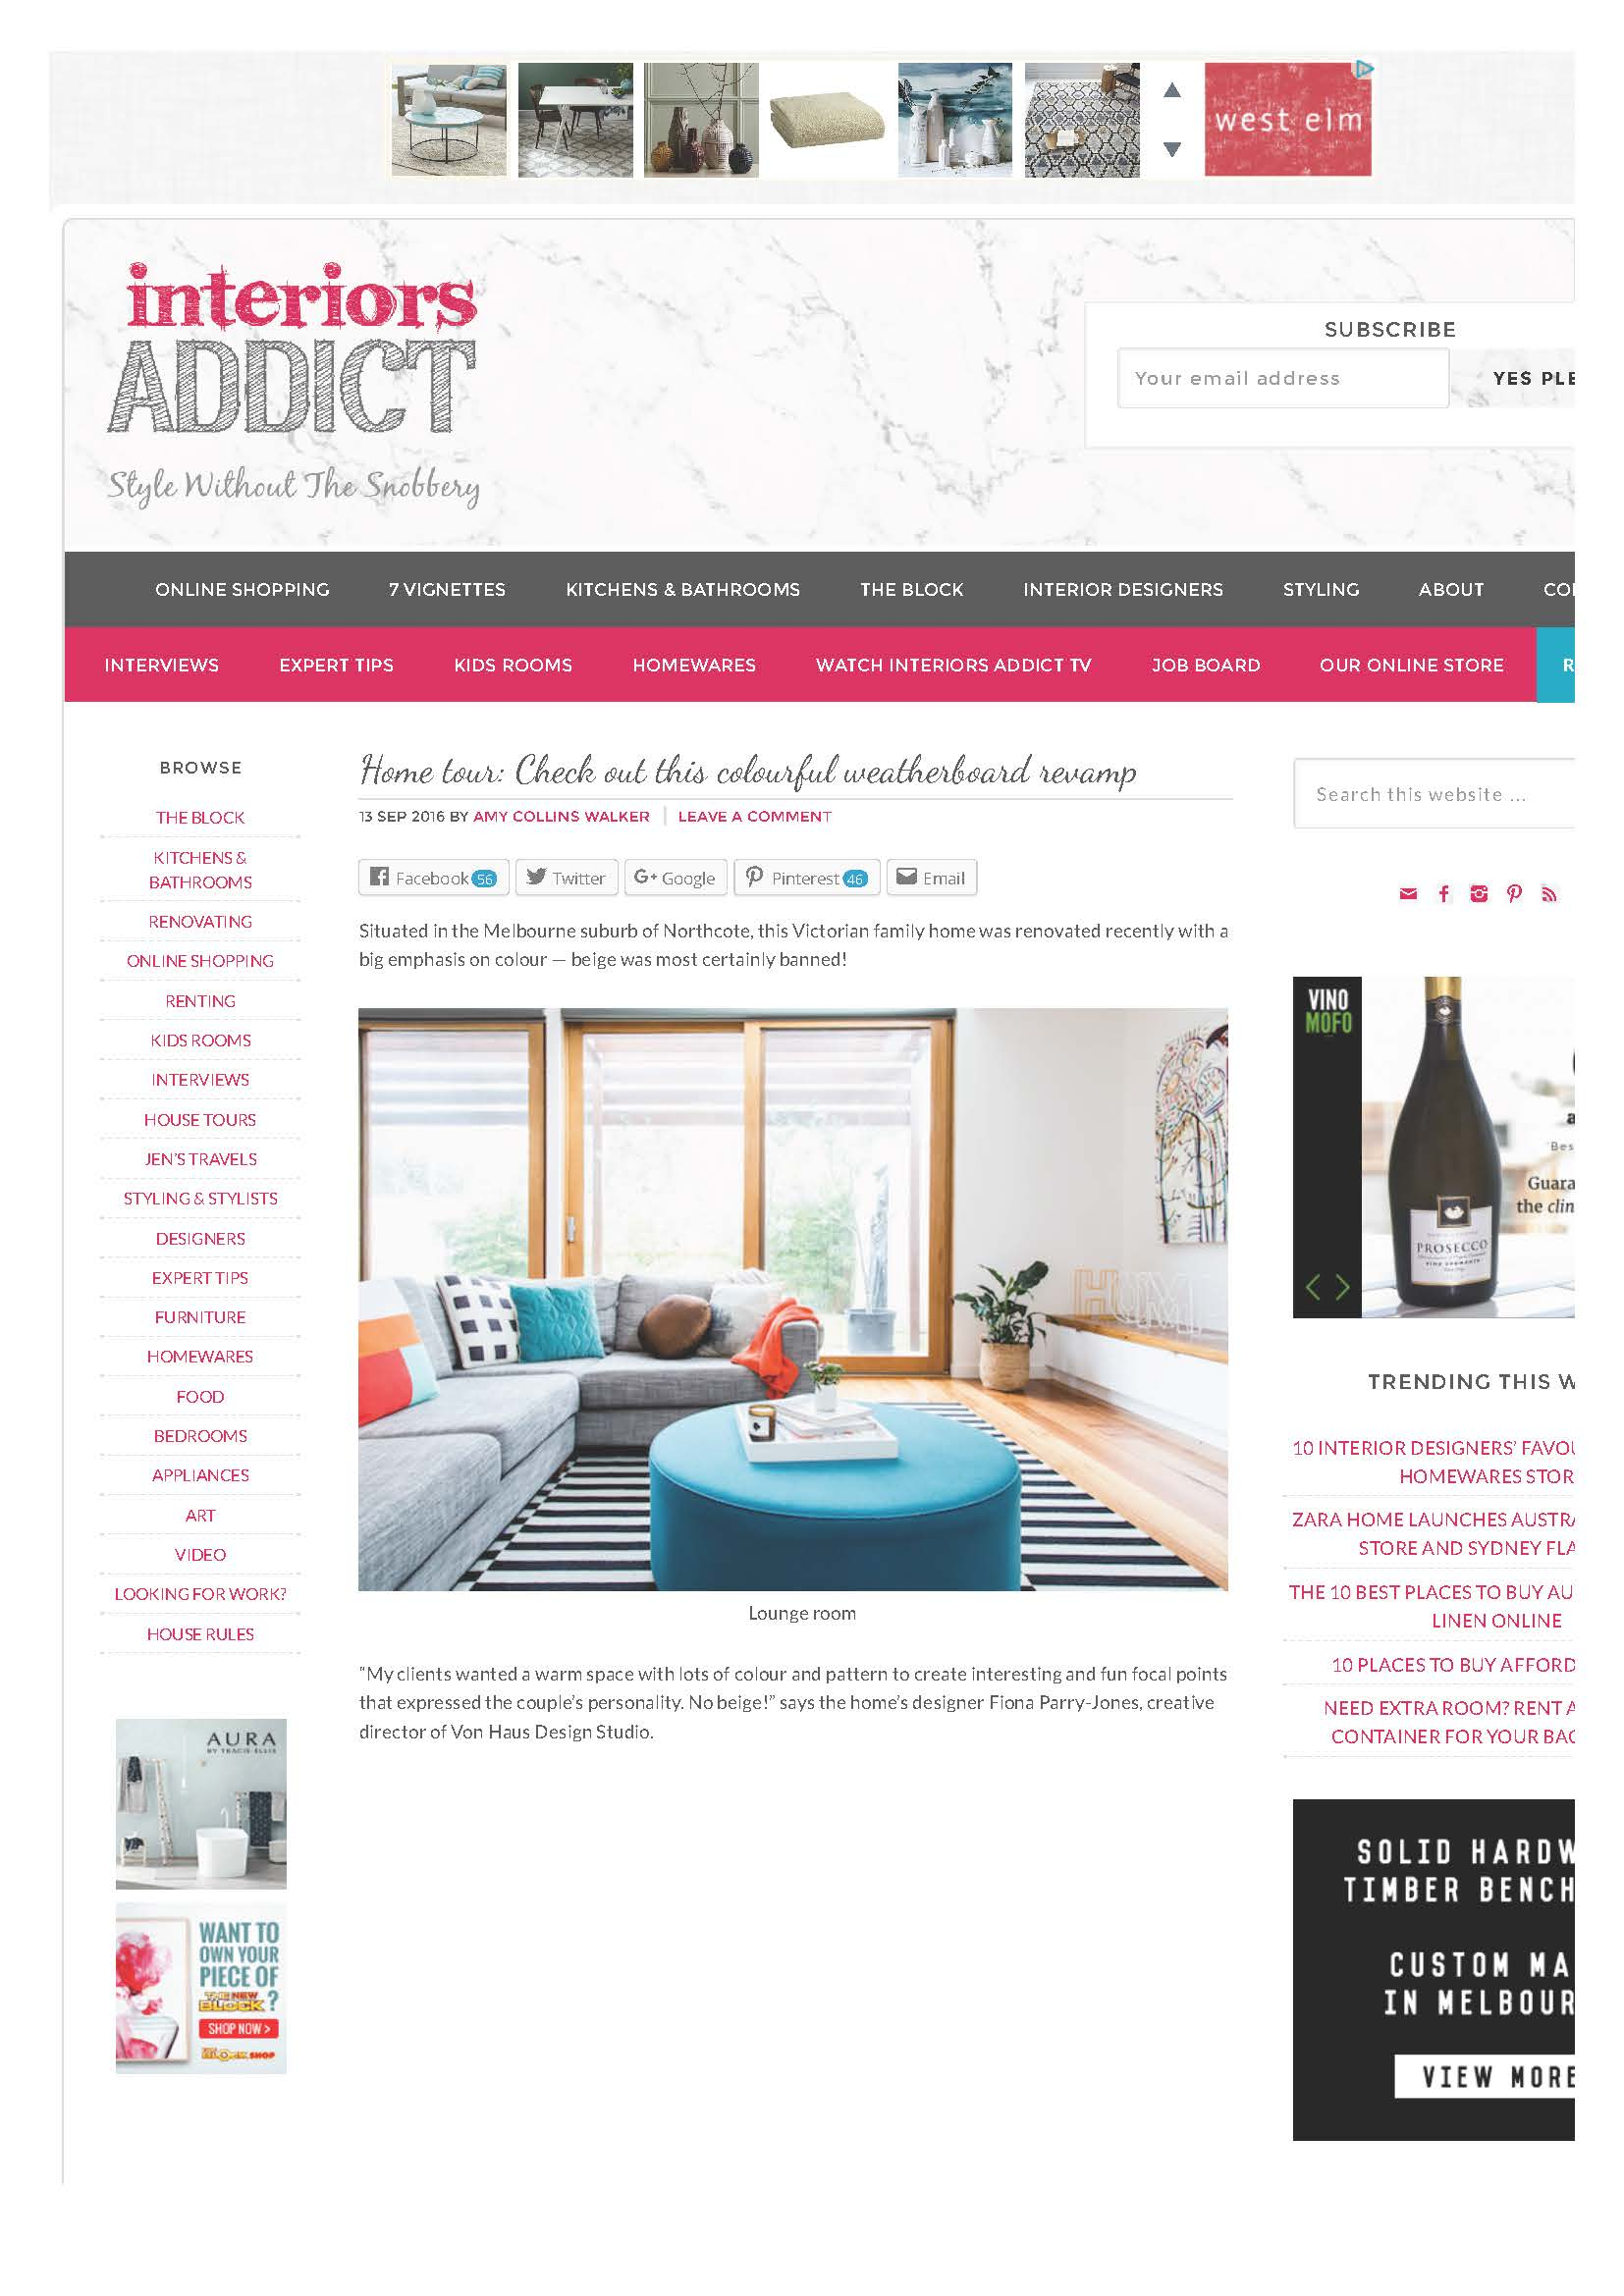 home-tour-check-out-this-colourful-weatherboard-revamp-the-interiors-addict_page_1